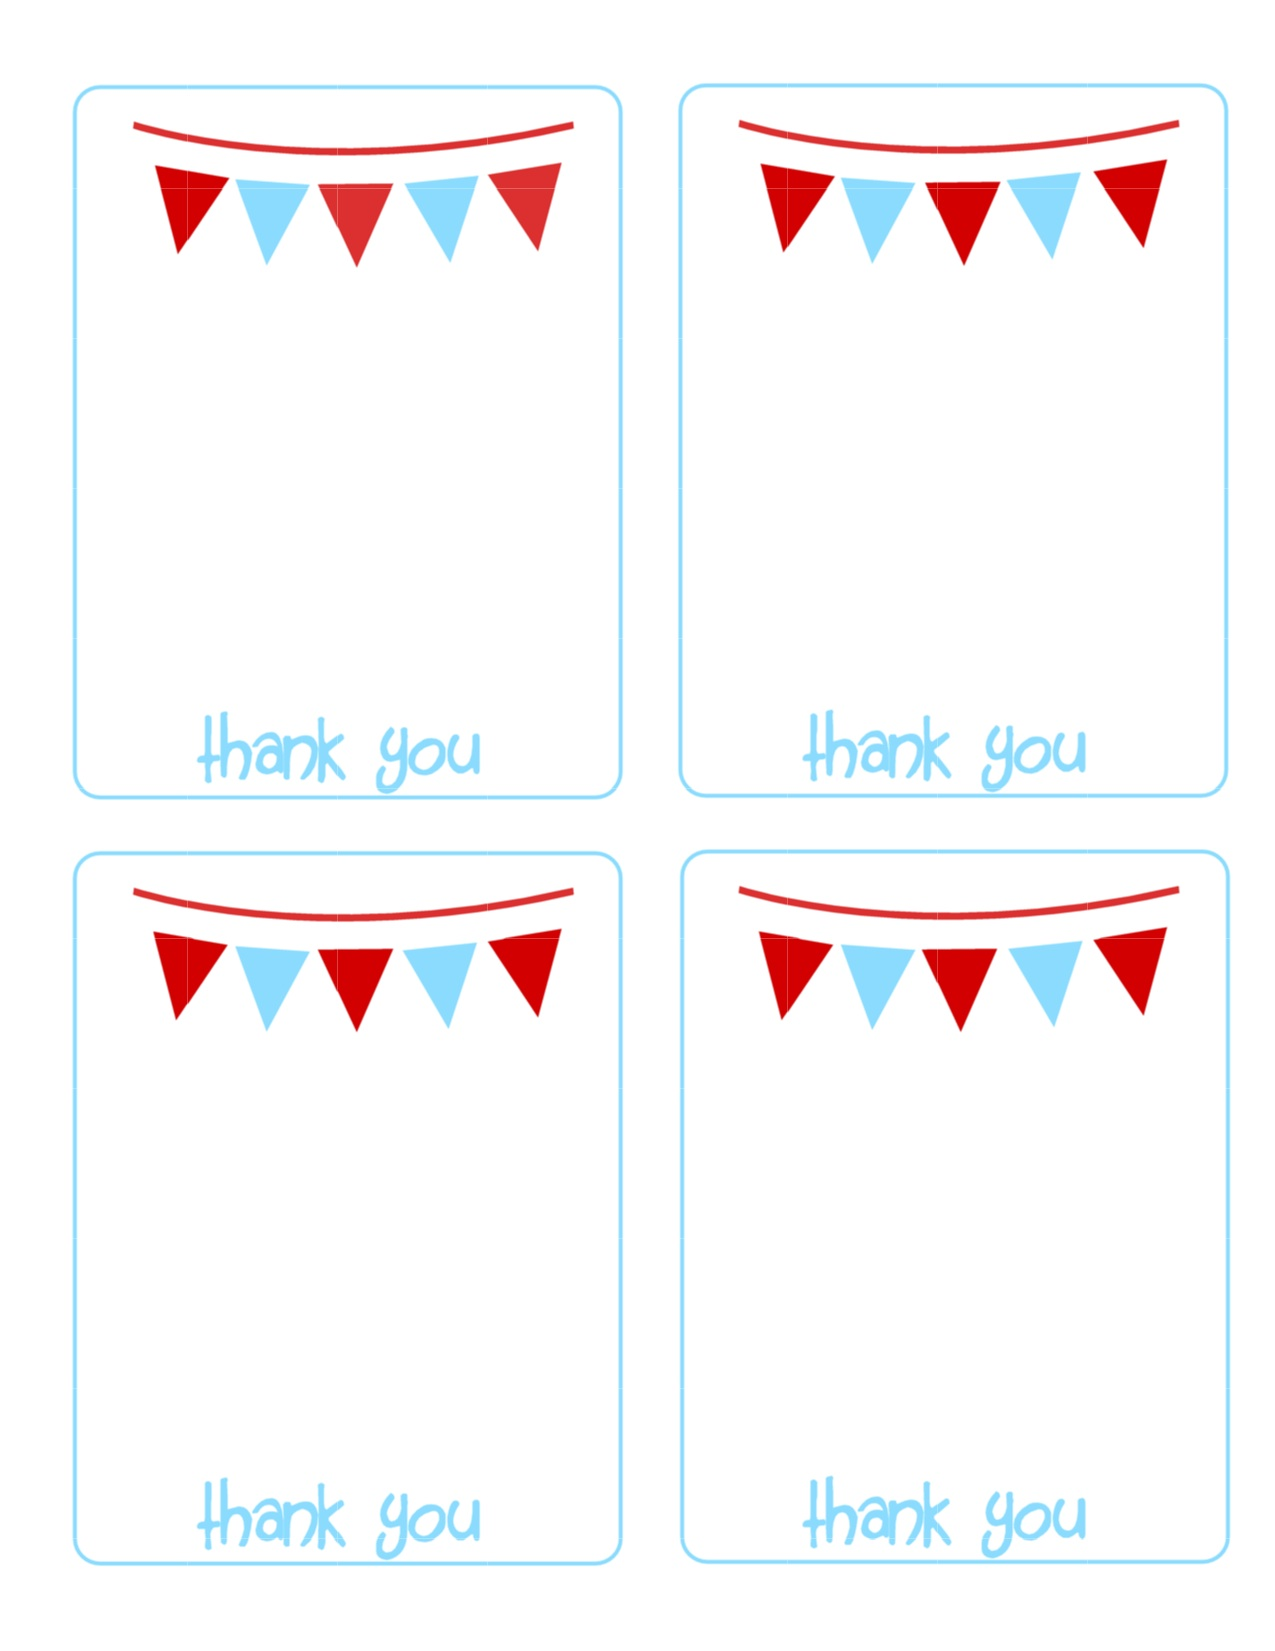 image relating to Printable Thank You Cards referred to as Printable Thank Yourself playing cards - The Residence of Hendrix